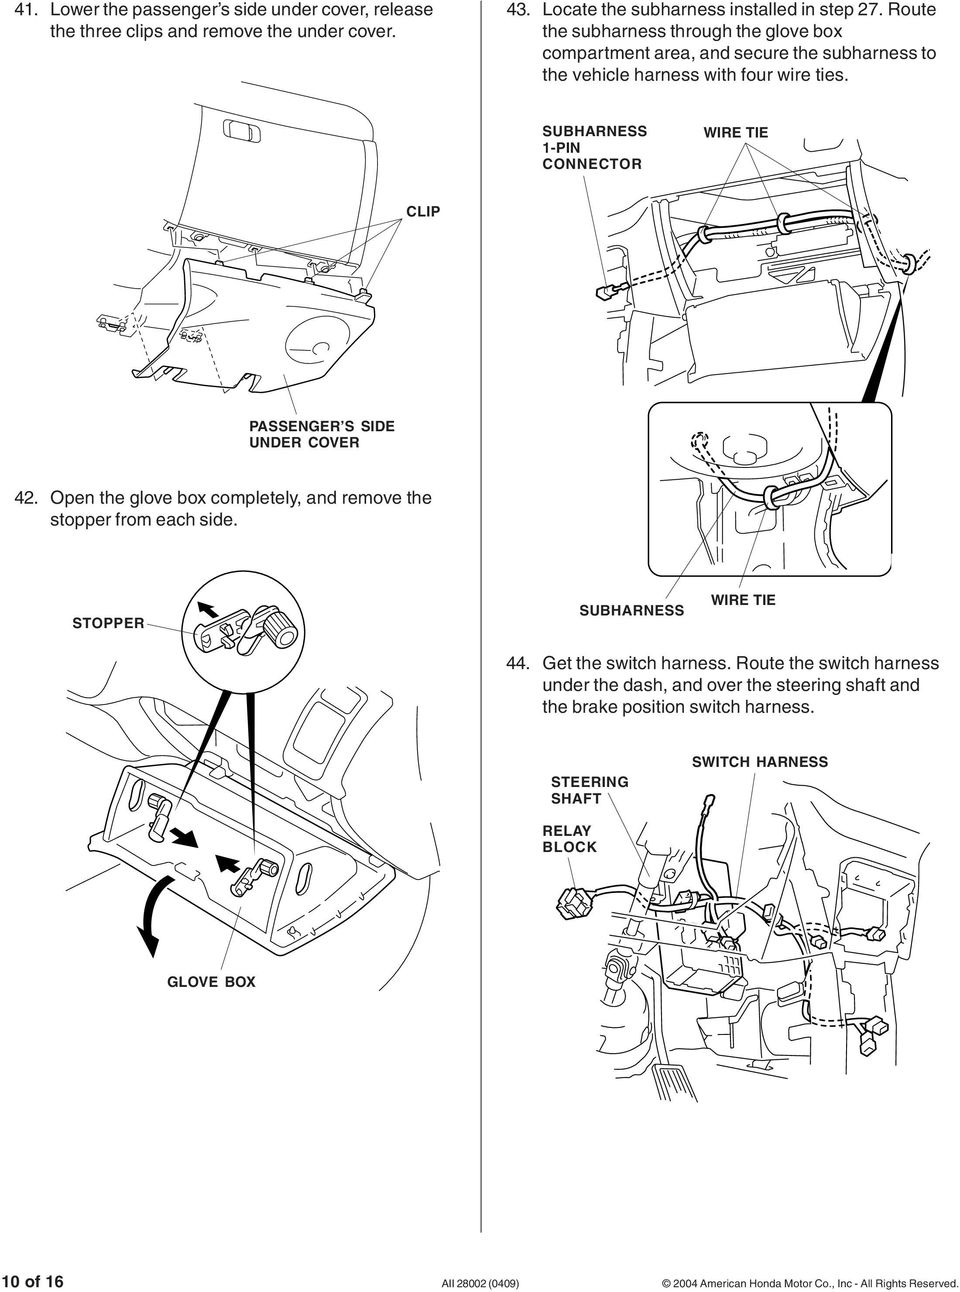 Installation Instructions Pdf Wiring Harness Clips Removal Sub 1 Pin Clip Passenger S Side Under Cover 42 Open The Glove Box